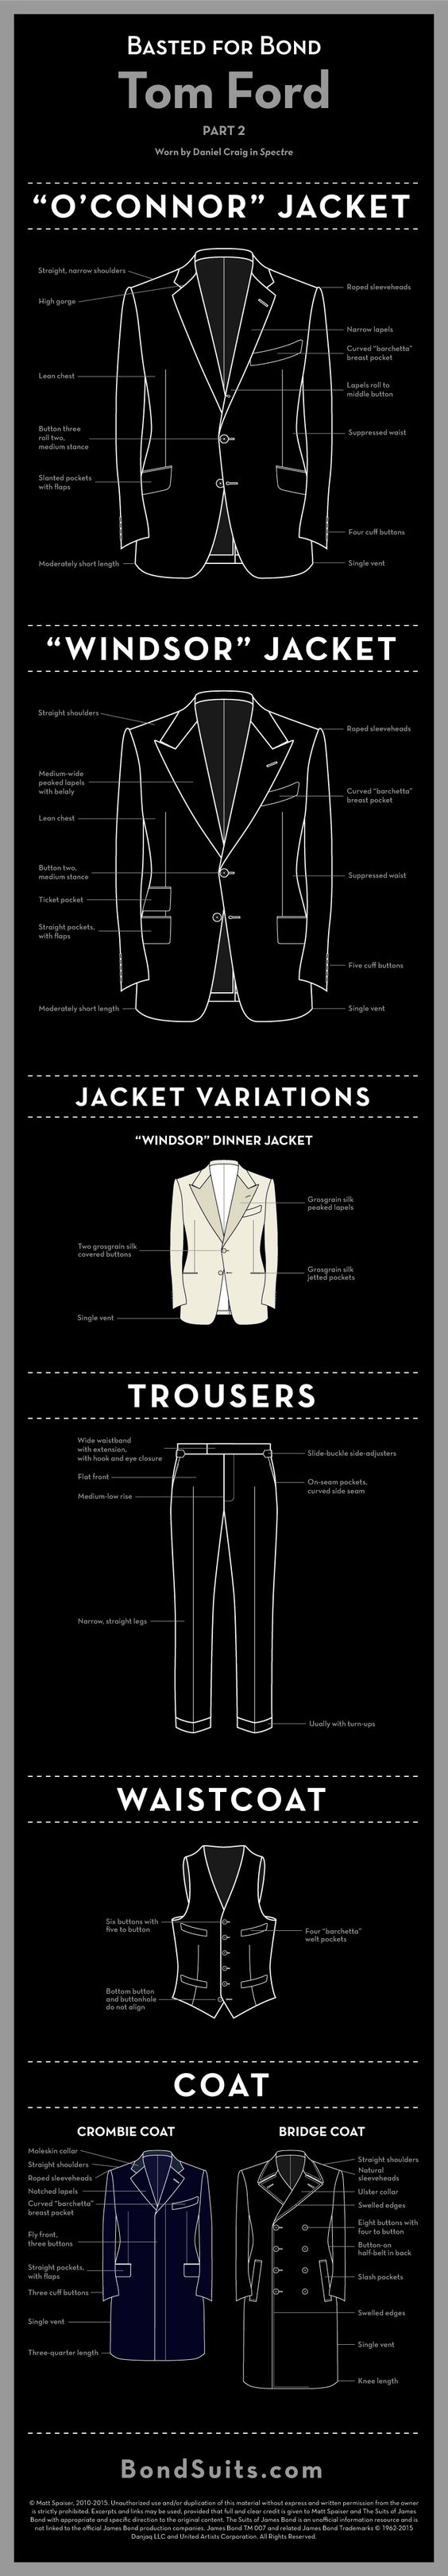 "The latest ""Basted for Bond"" infographic looks at the Tom Ford suits and coats that Daniel Craig wears in Spectre. This infographic details the differences between the updated roll two ""O'Connor"" suit jacket and the peak lapelled ""Windsor"" suit jacket. The single-breasted … Continue reading →"